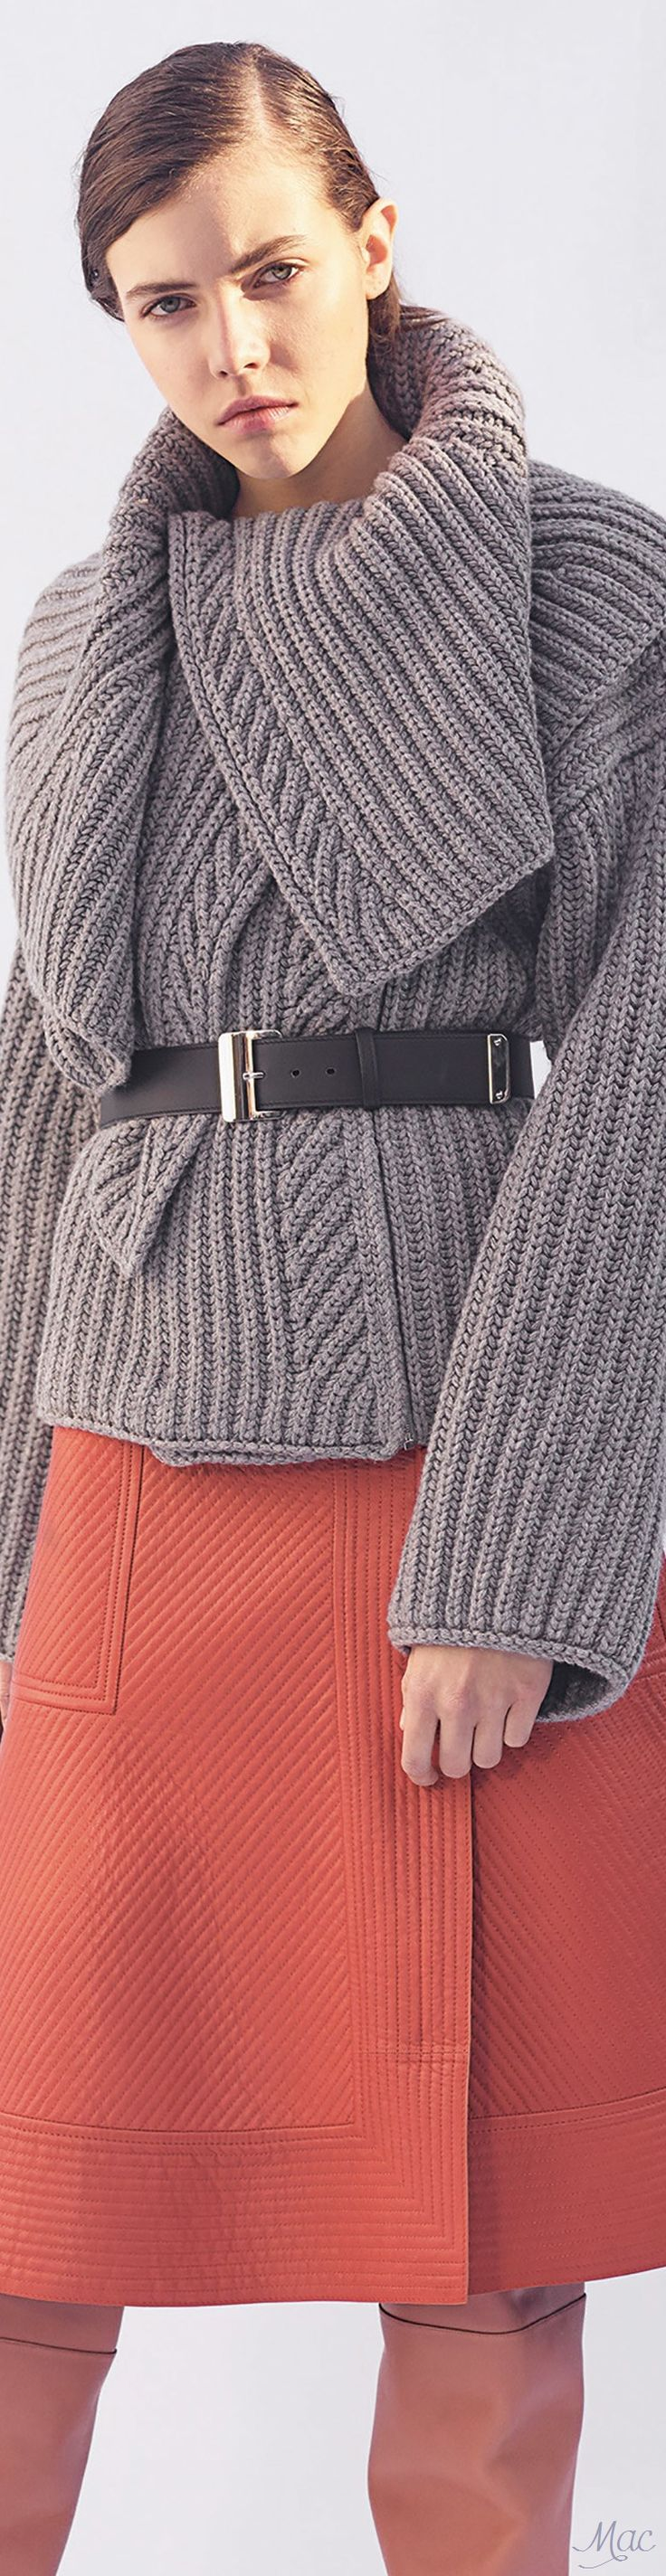 Hermès Pre-Fall 2017 This is a lot of sweater love, love, love!